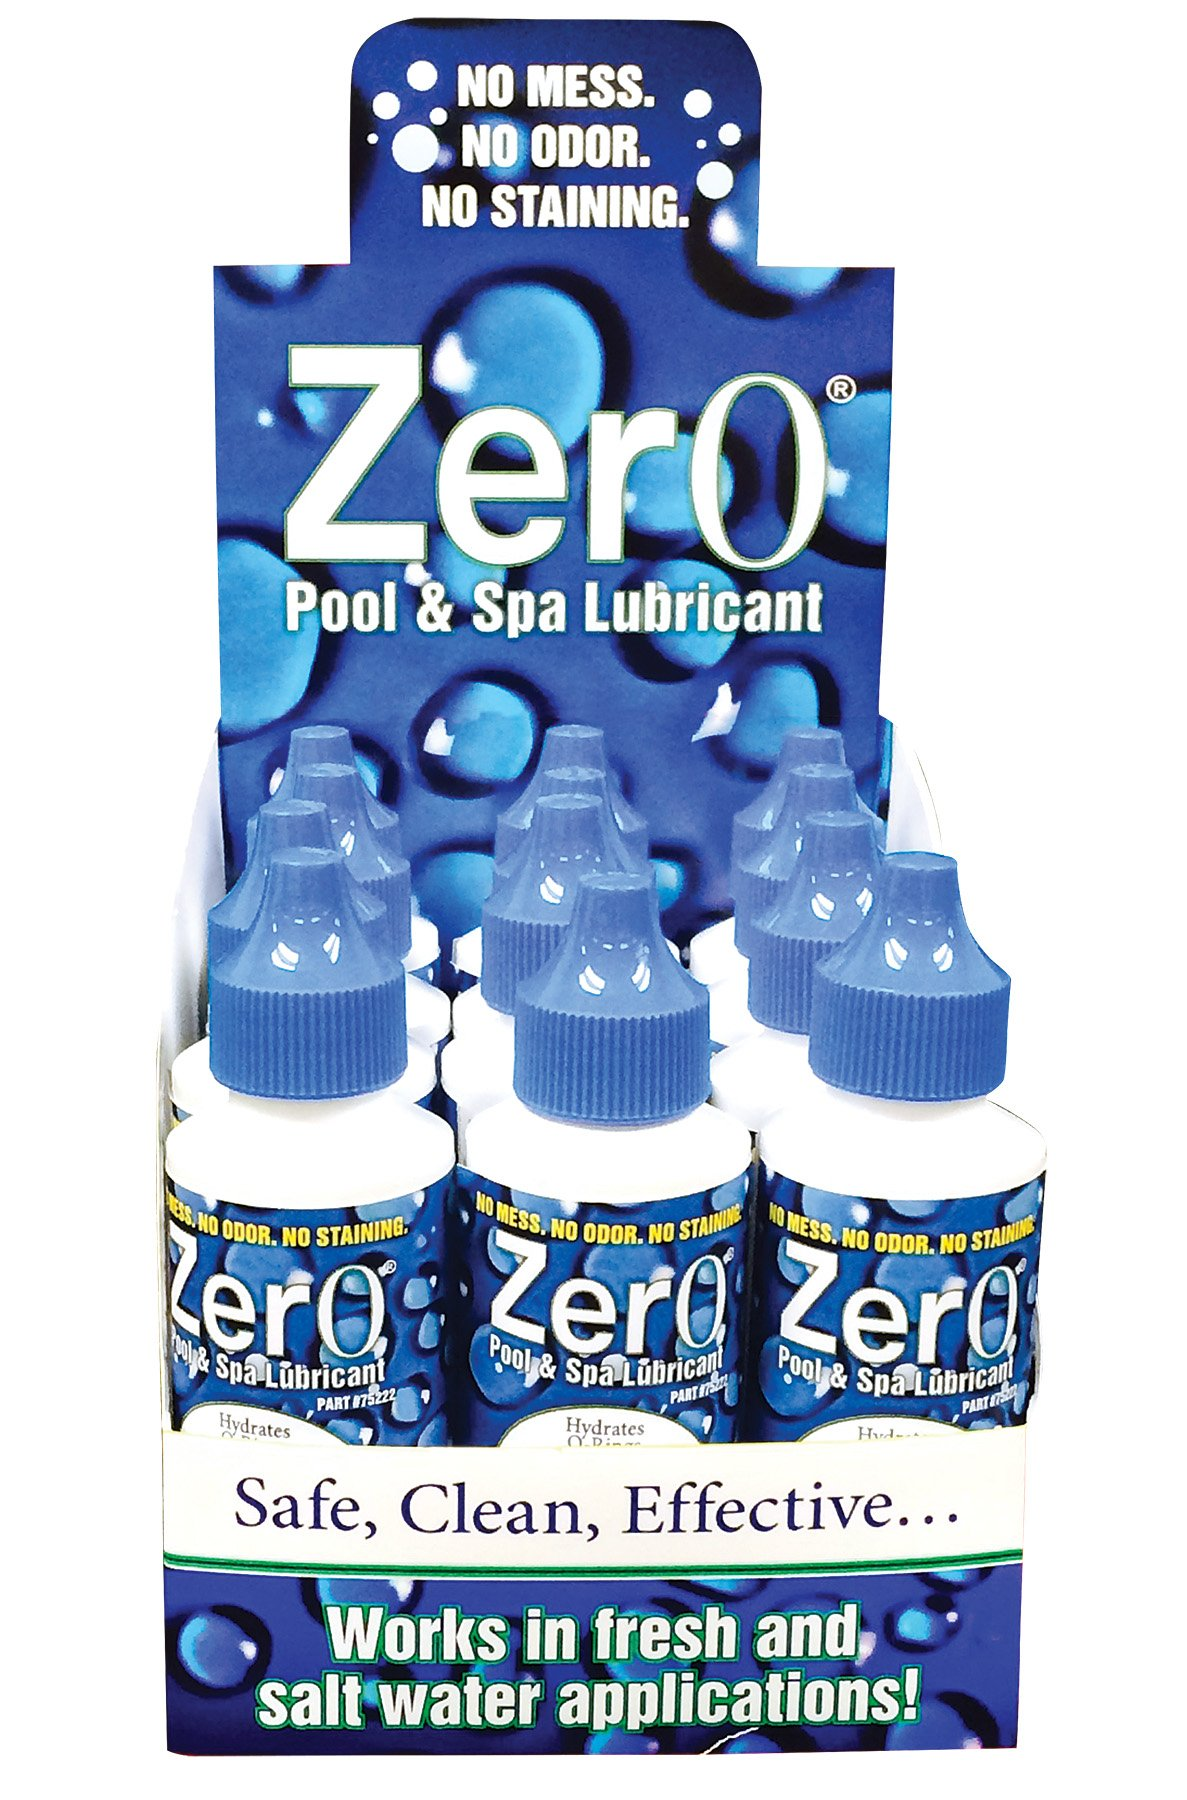 Lubegard 75221 Zer0 Pool and Spa Lubricant, 2 fl. oz, (Pack of 12) by Lubegard